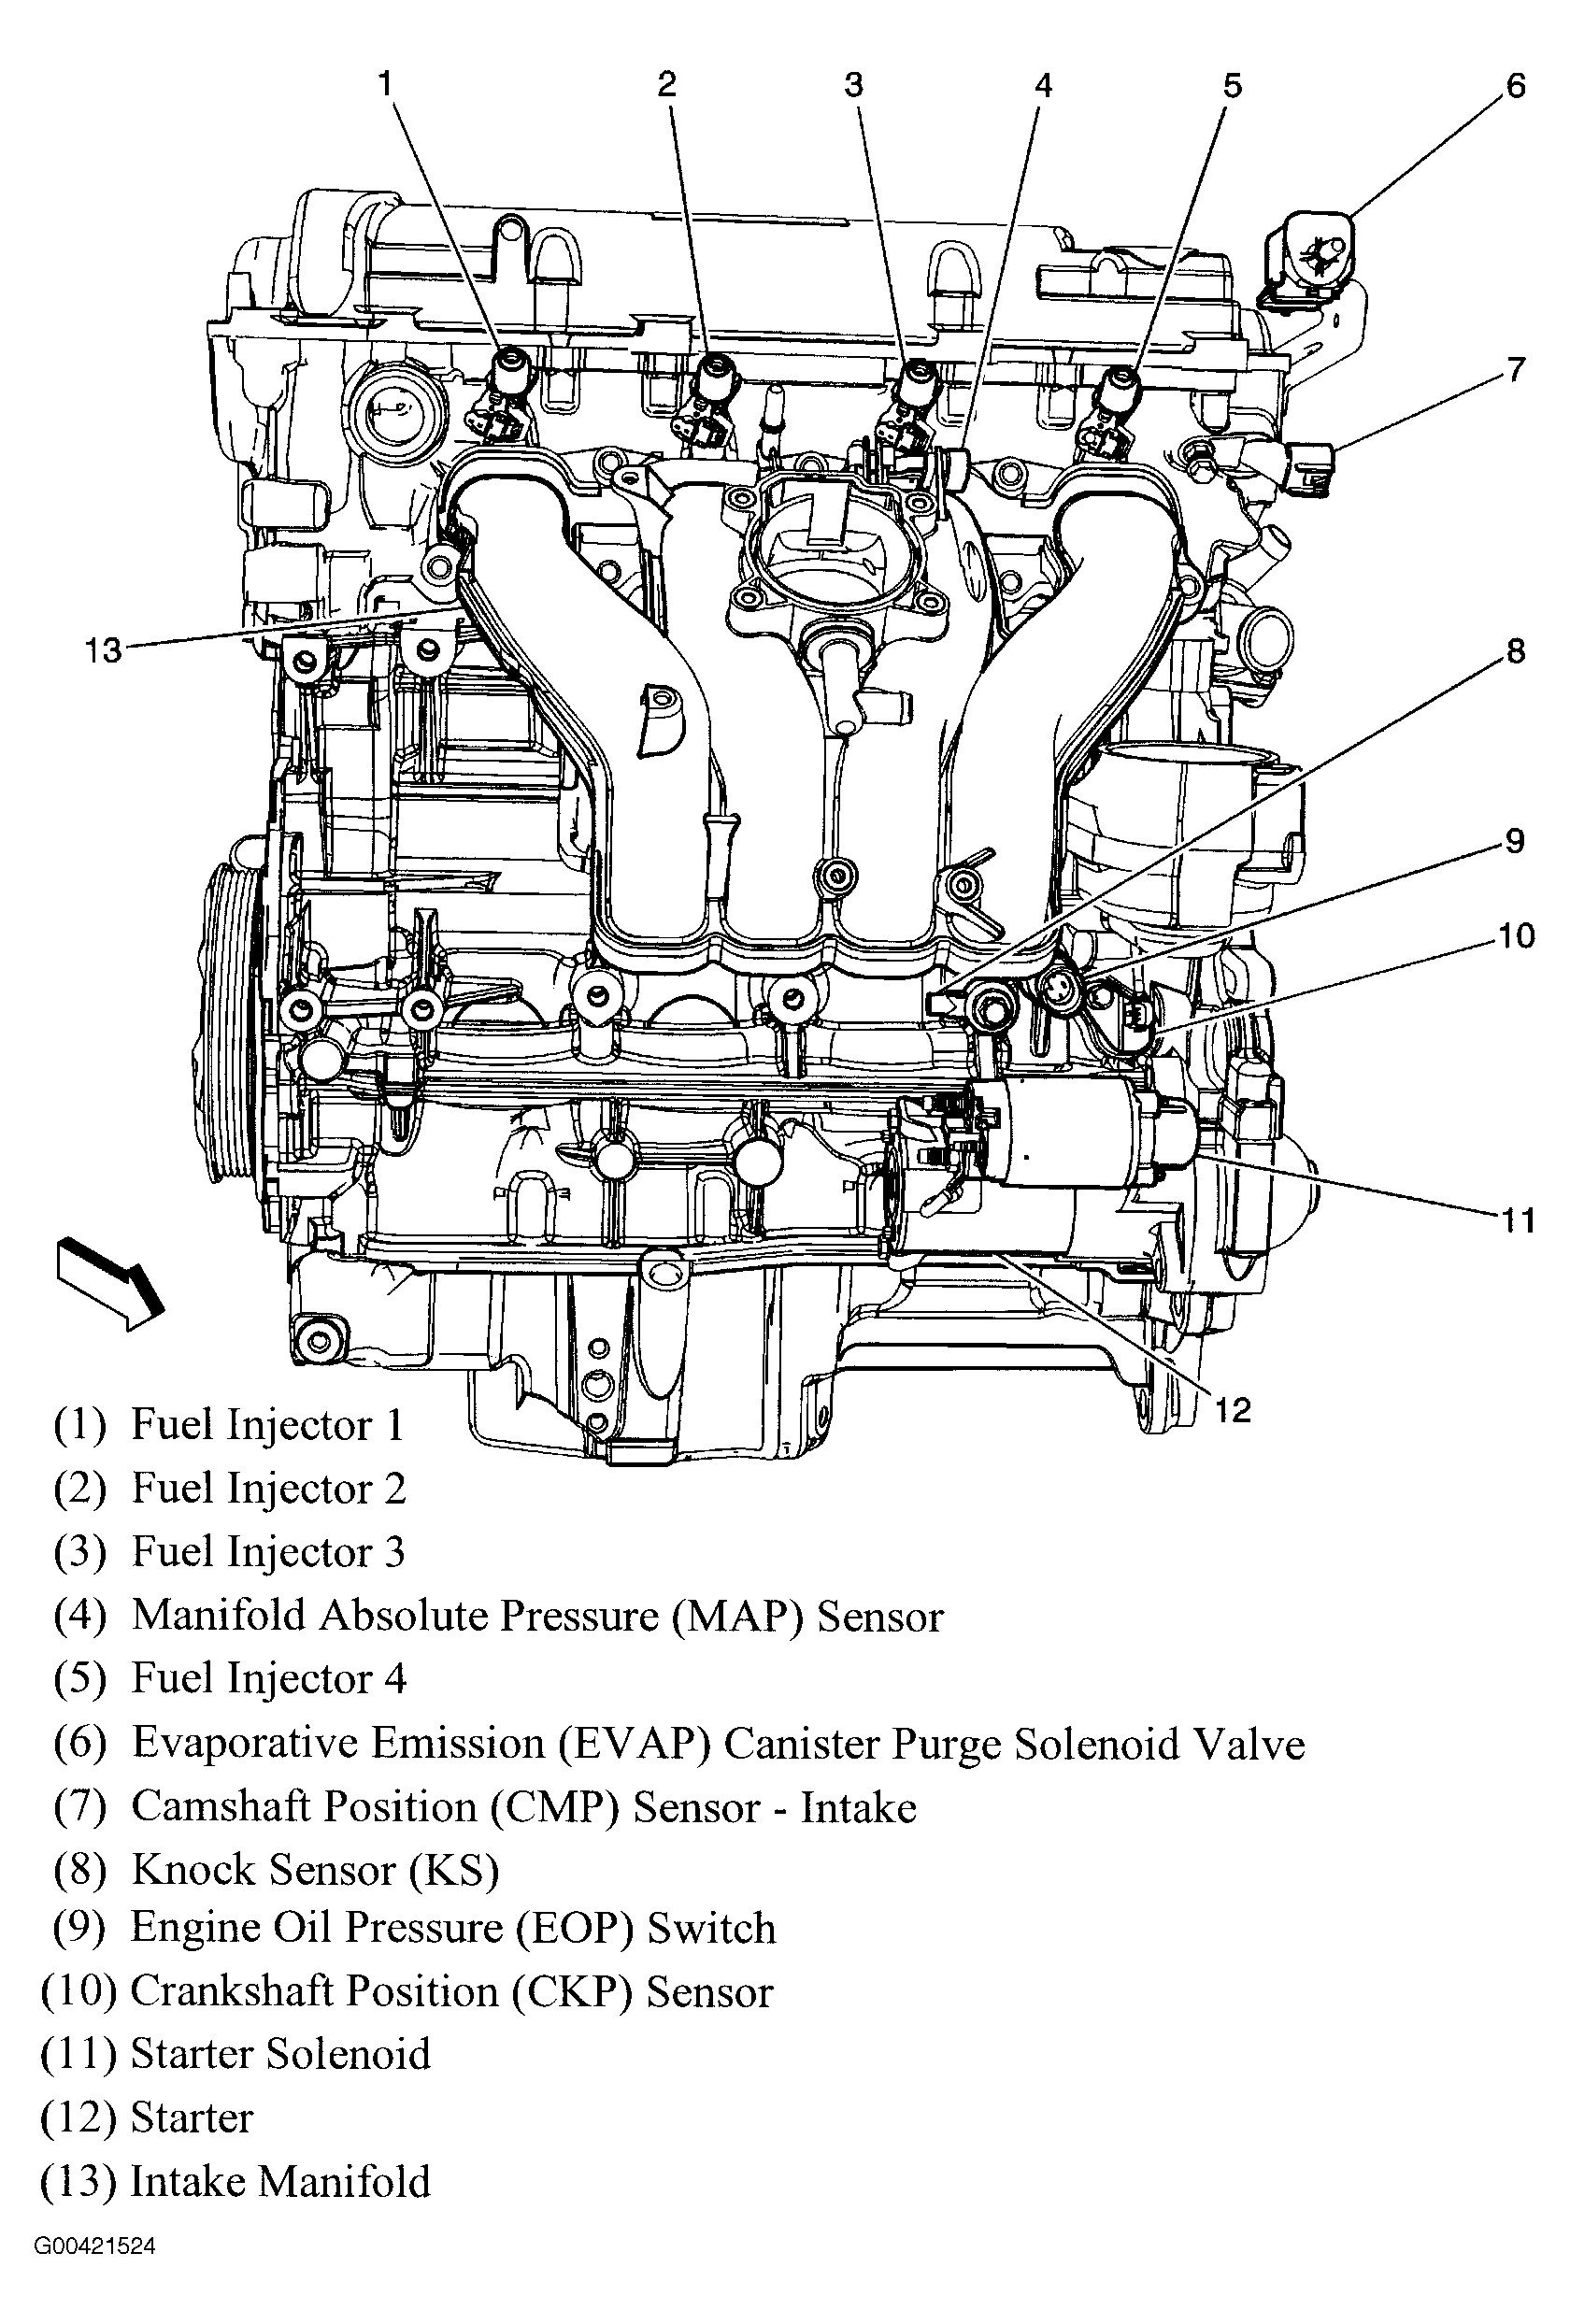 2011 chevy impala fuse diagram auto electrical wiring diagram rh psu edu co  fr hardtobelieve me